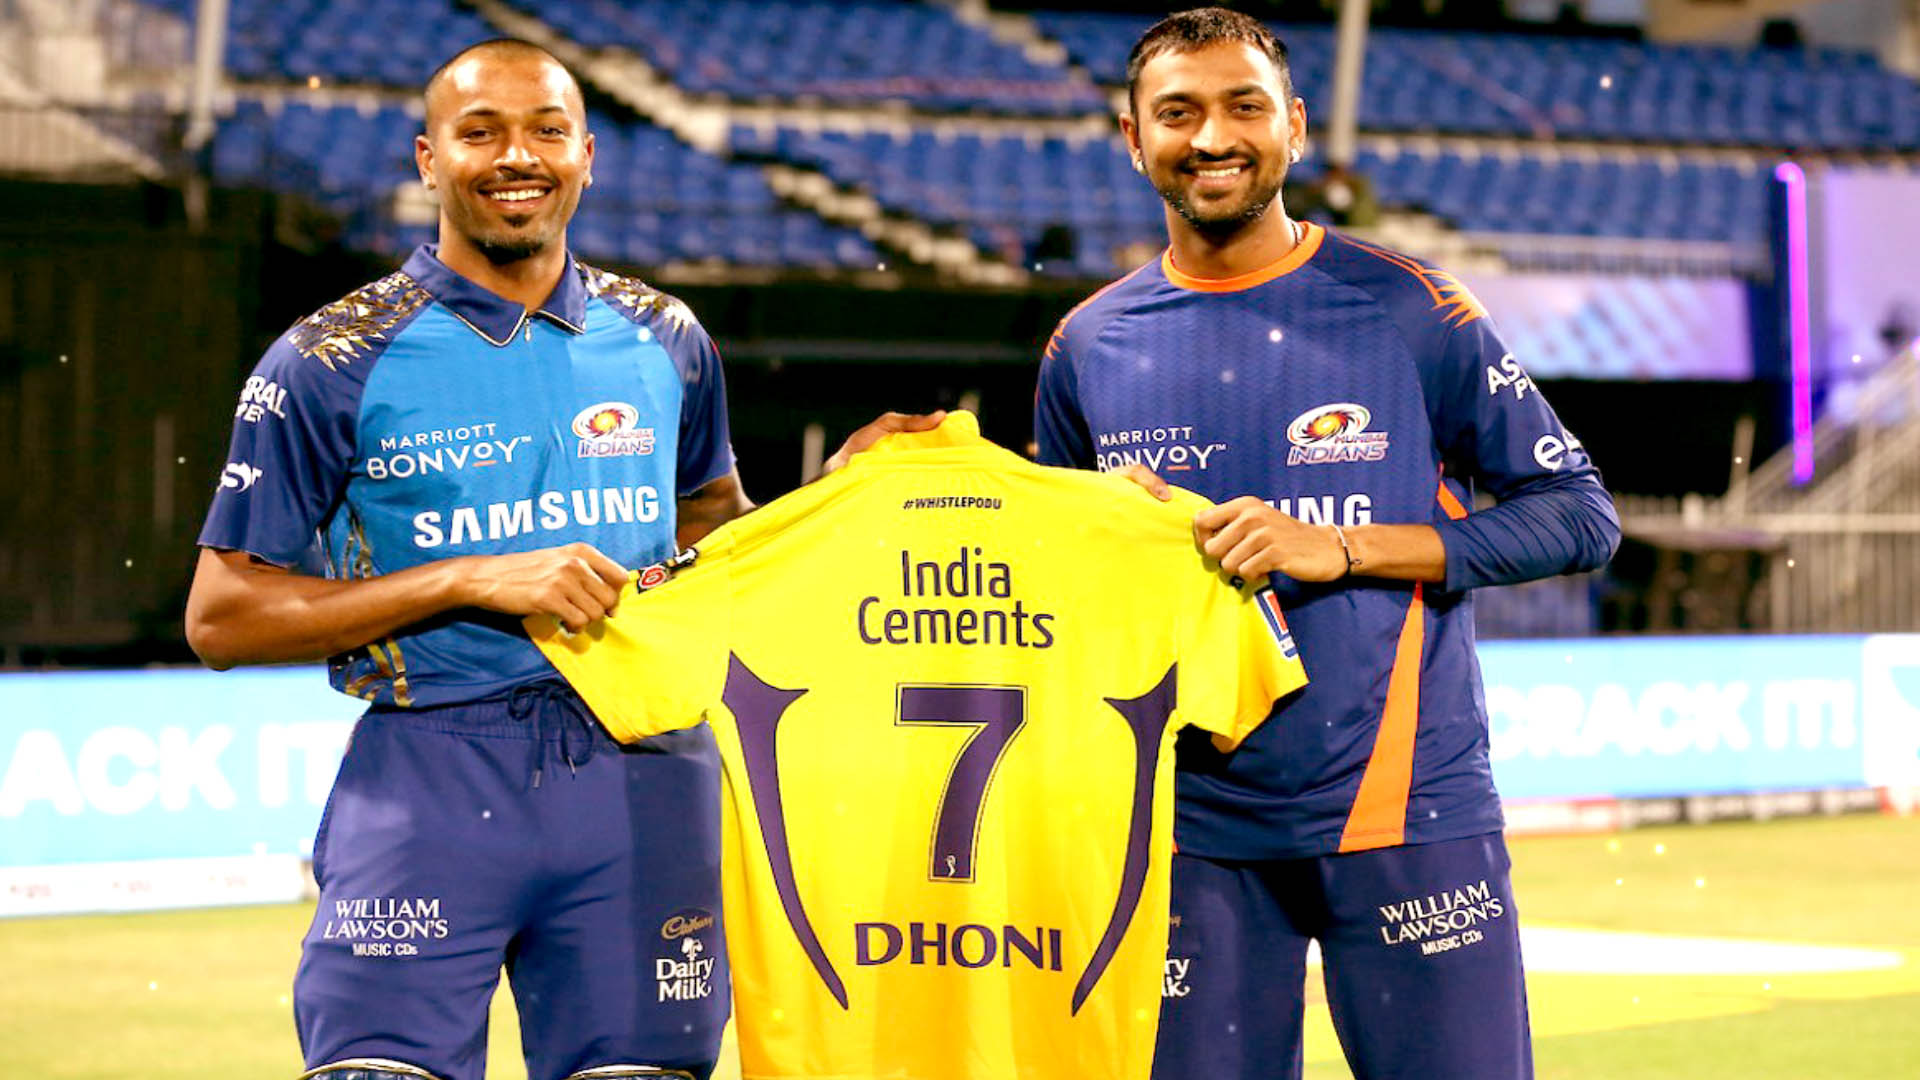 Dhoni retiring from IPL? Fans worried after CSK captain gifts Match Jersey to Pandya Brothers